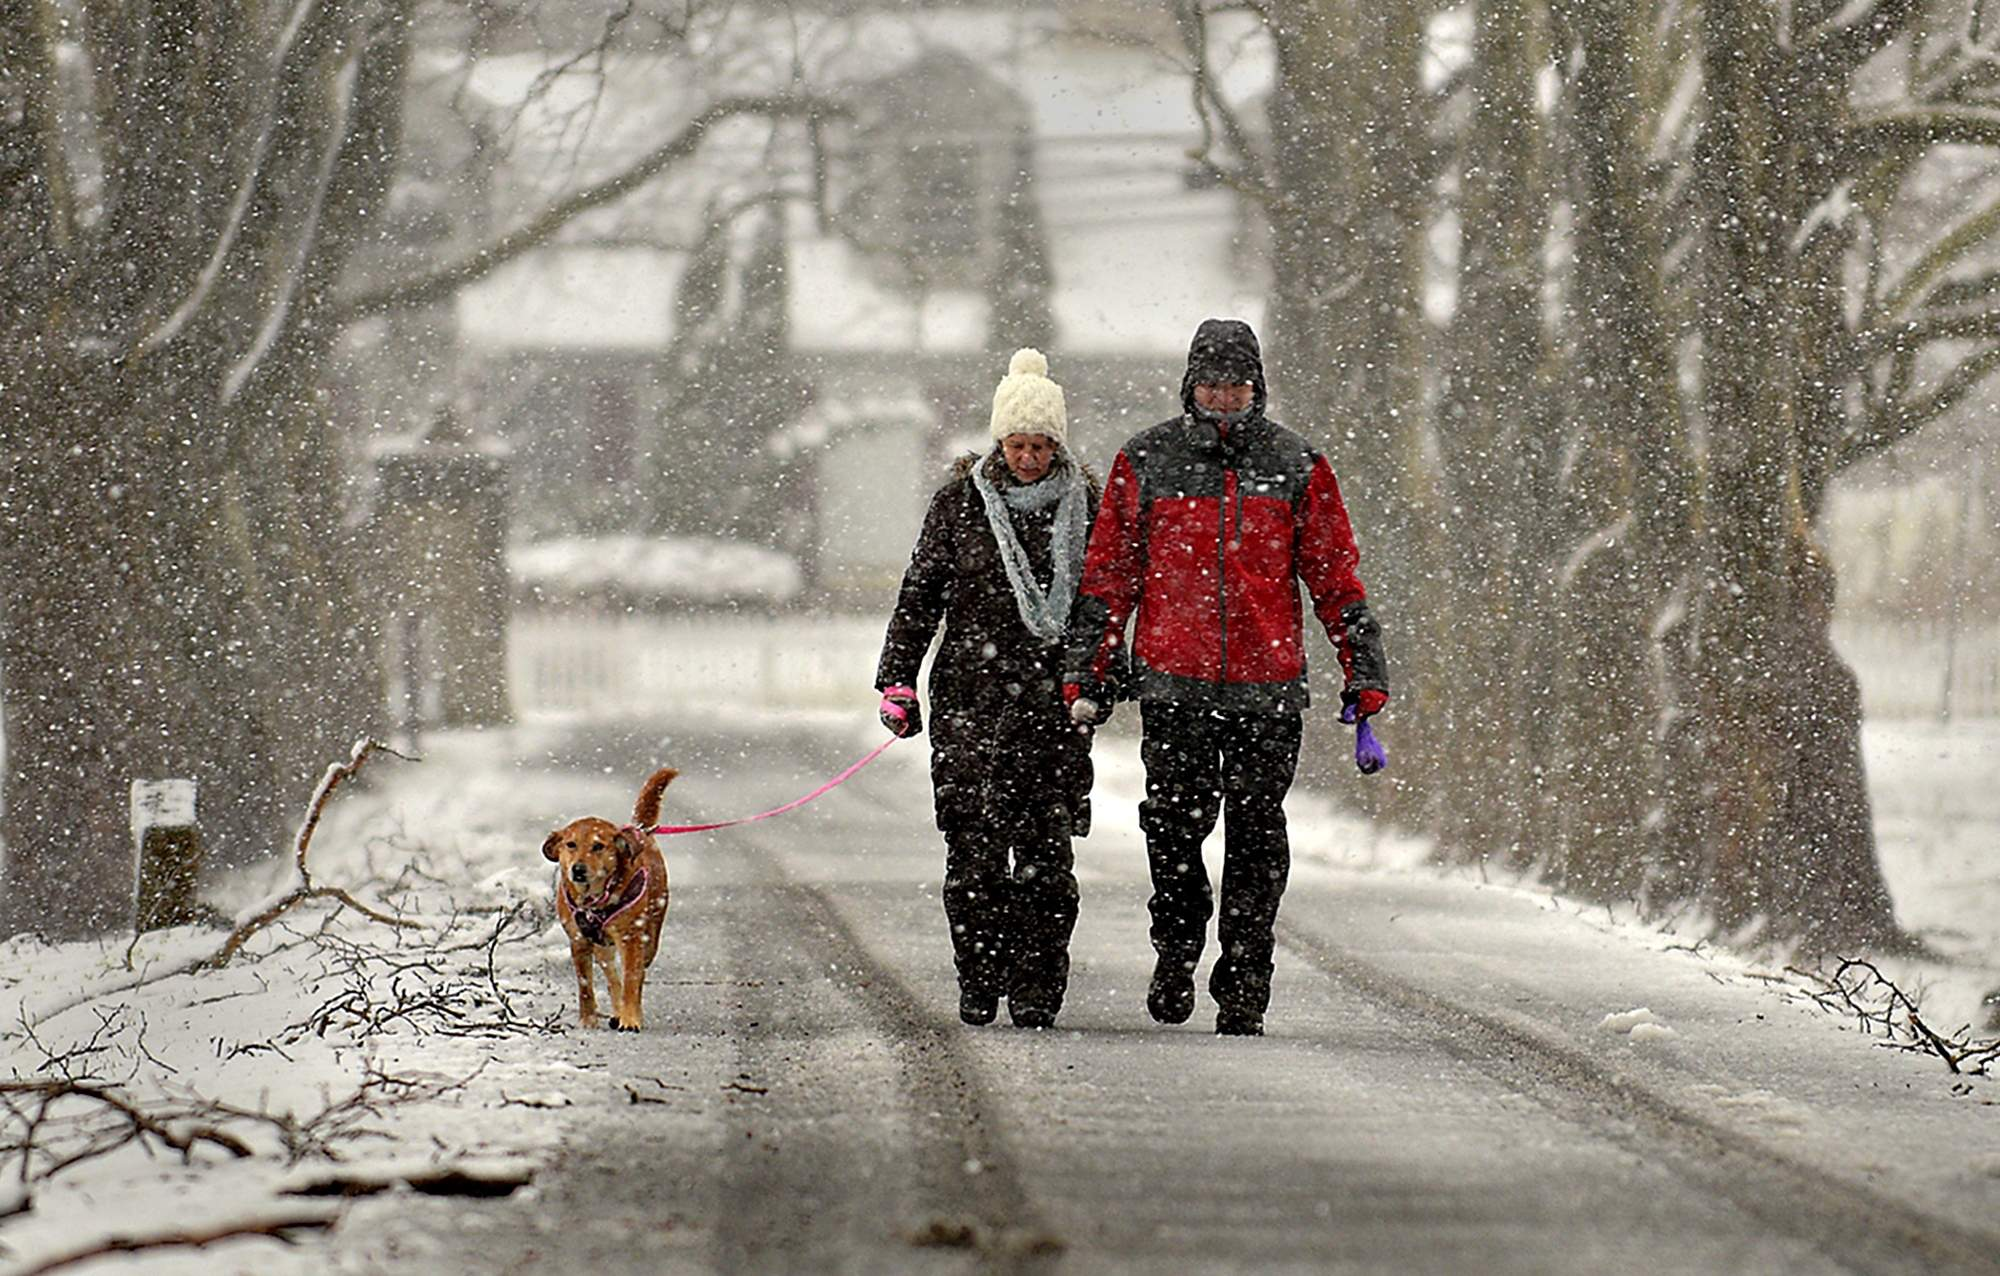 A couple and their dog take a walk through Fonthill on Wednesday, March 7, 2018, during the snowstorm. [KIM WEIMER / STAFF PHOTOJOURNALIST]